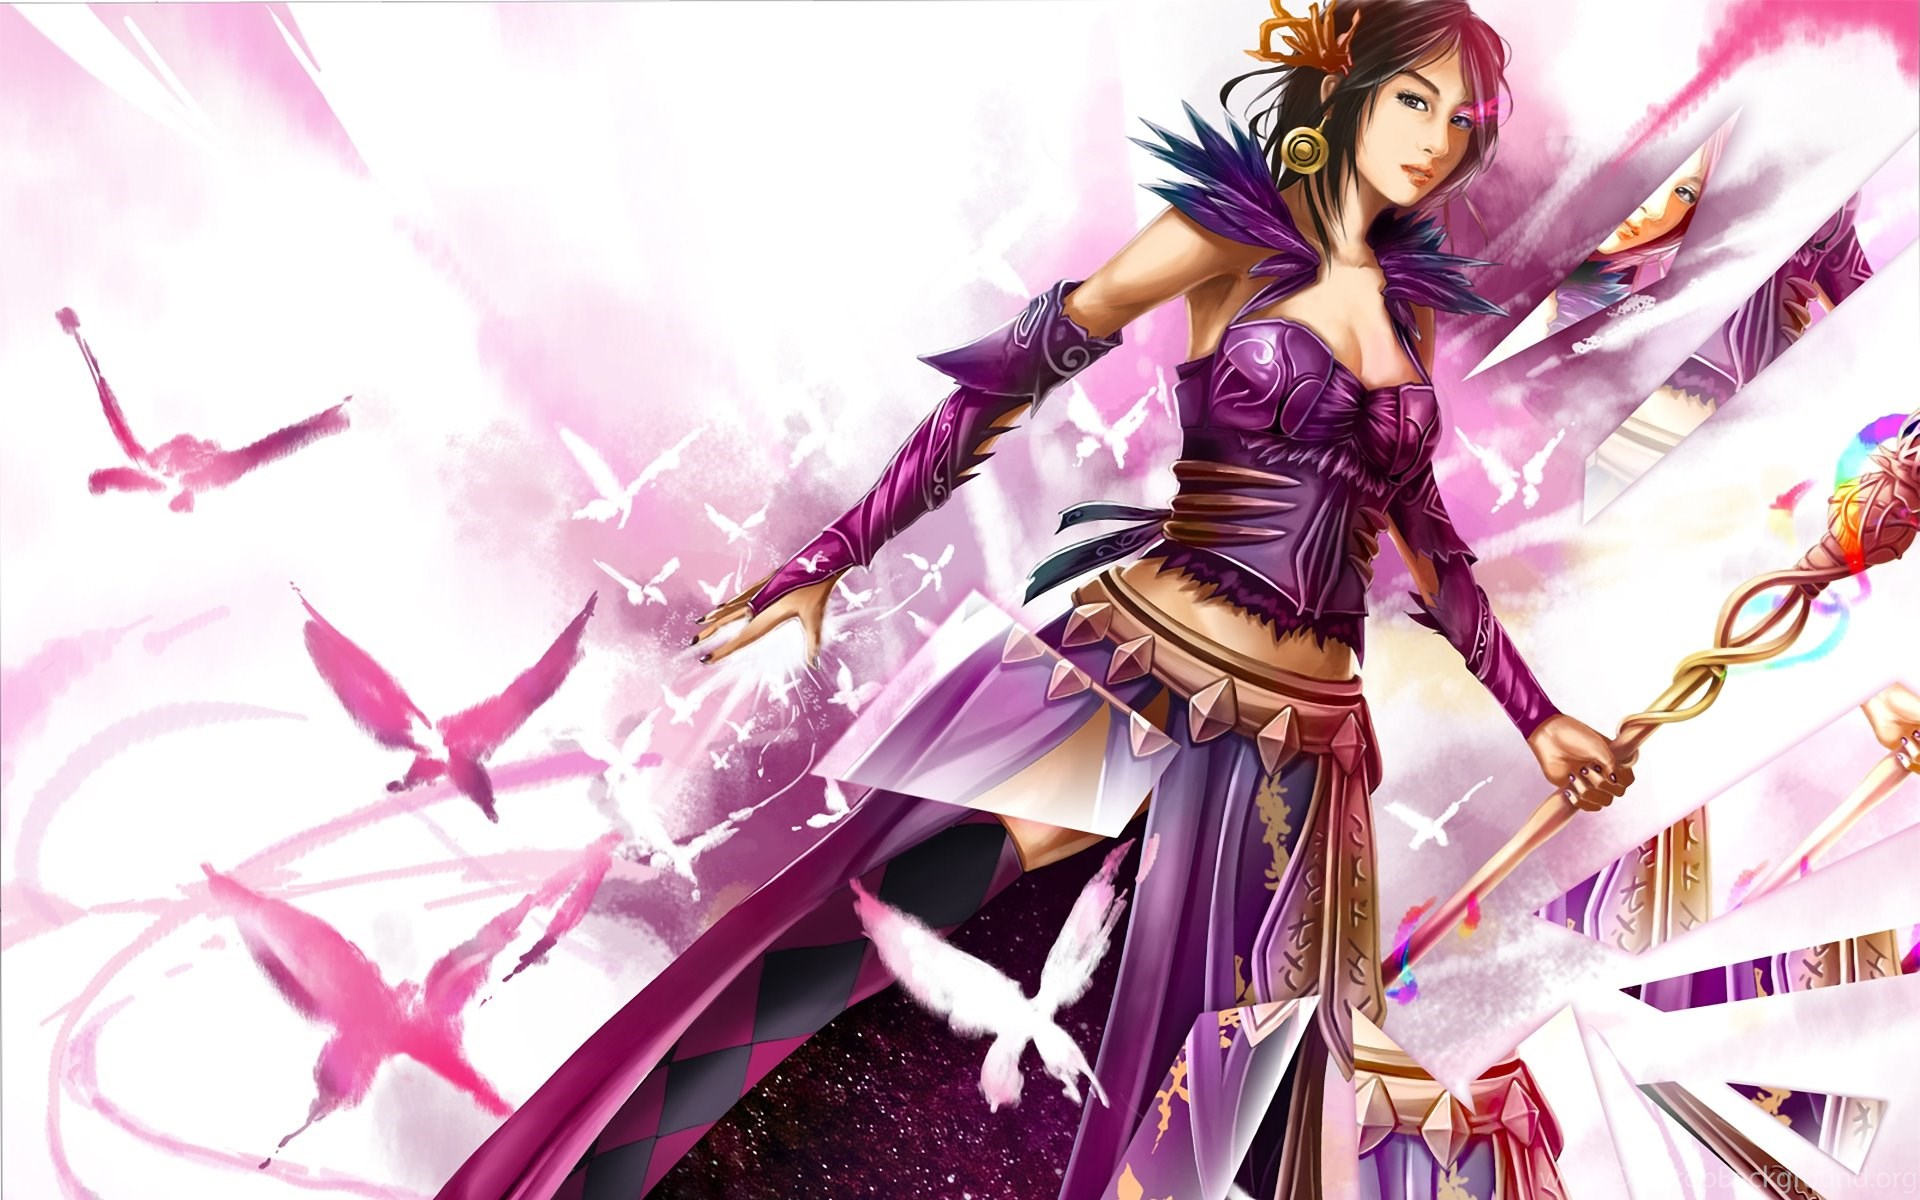 Guild Wars 2 Wallpapers Mesmer Wallpaper Desktop Background